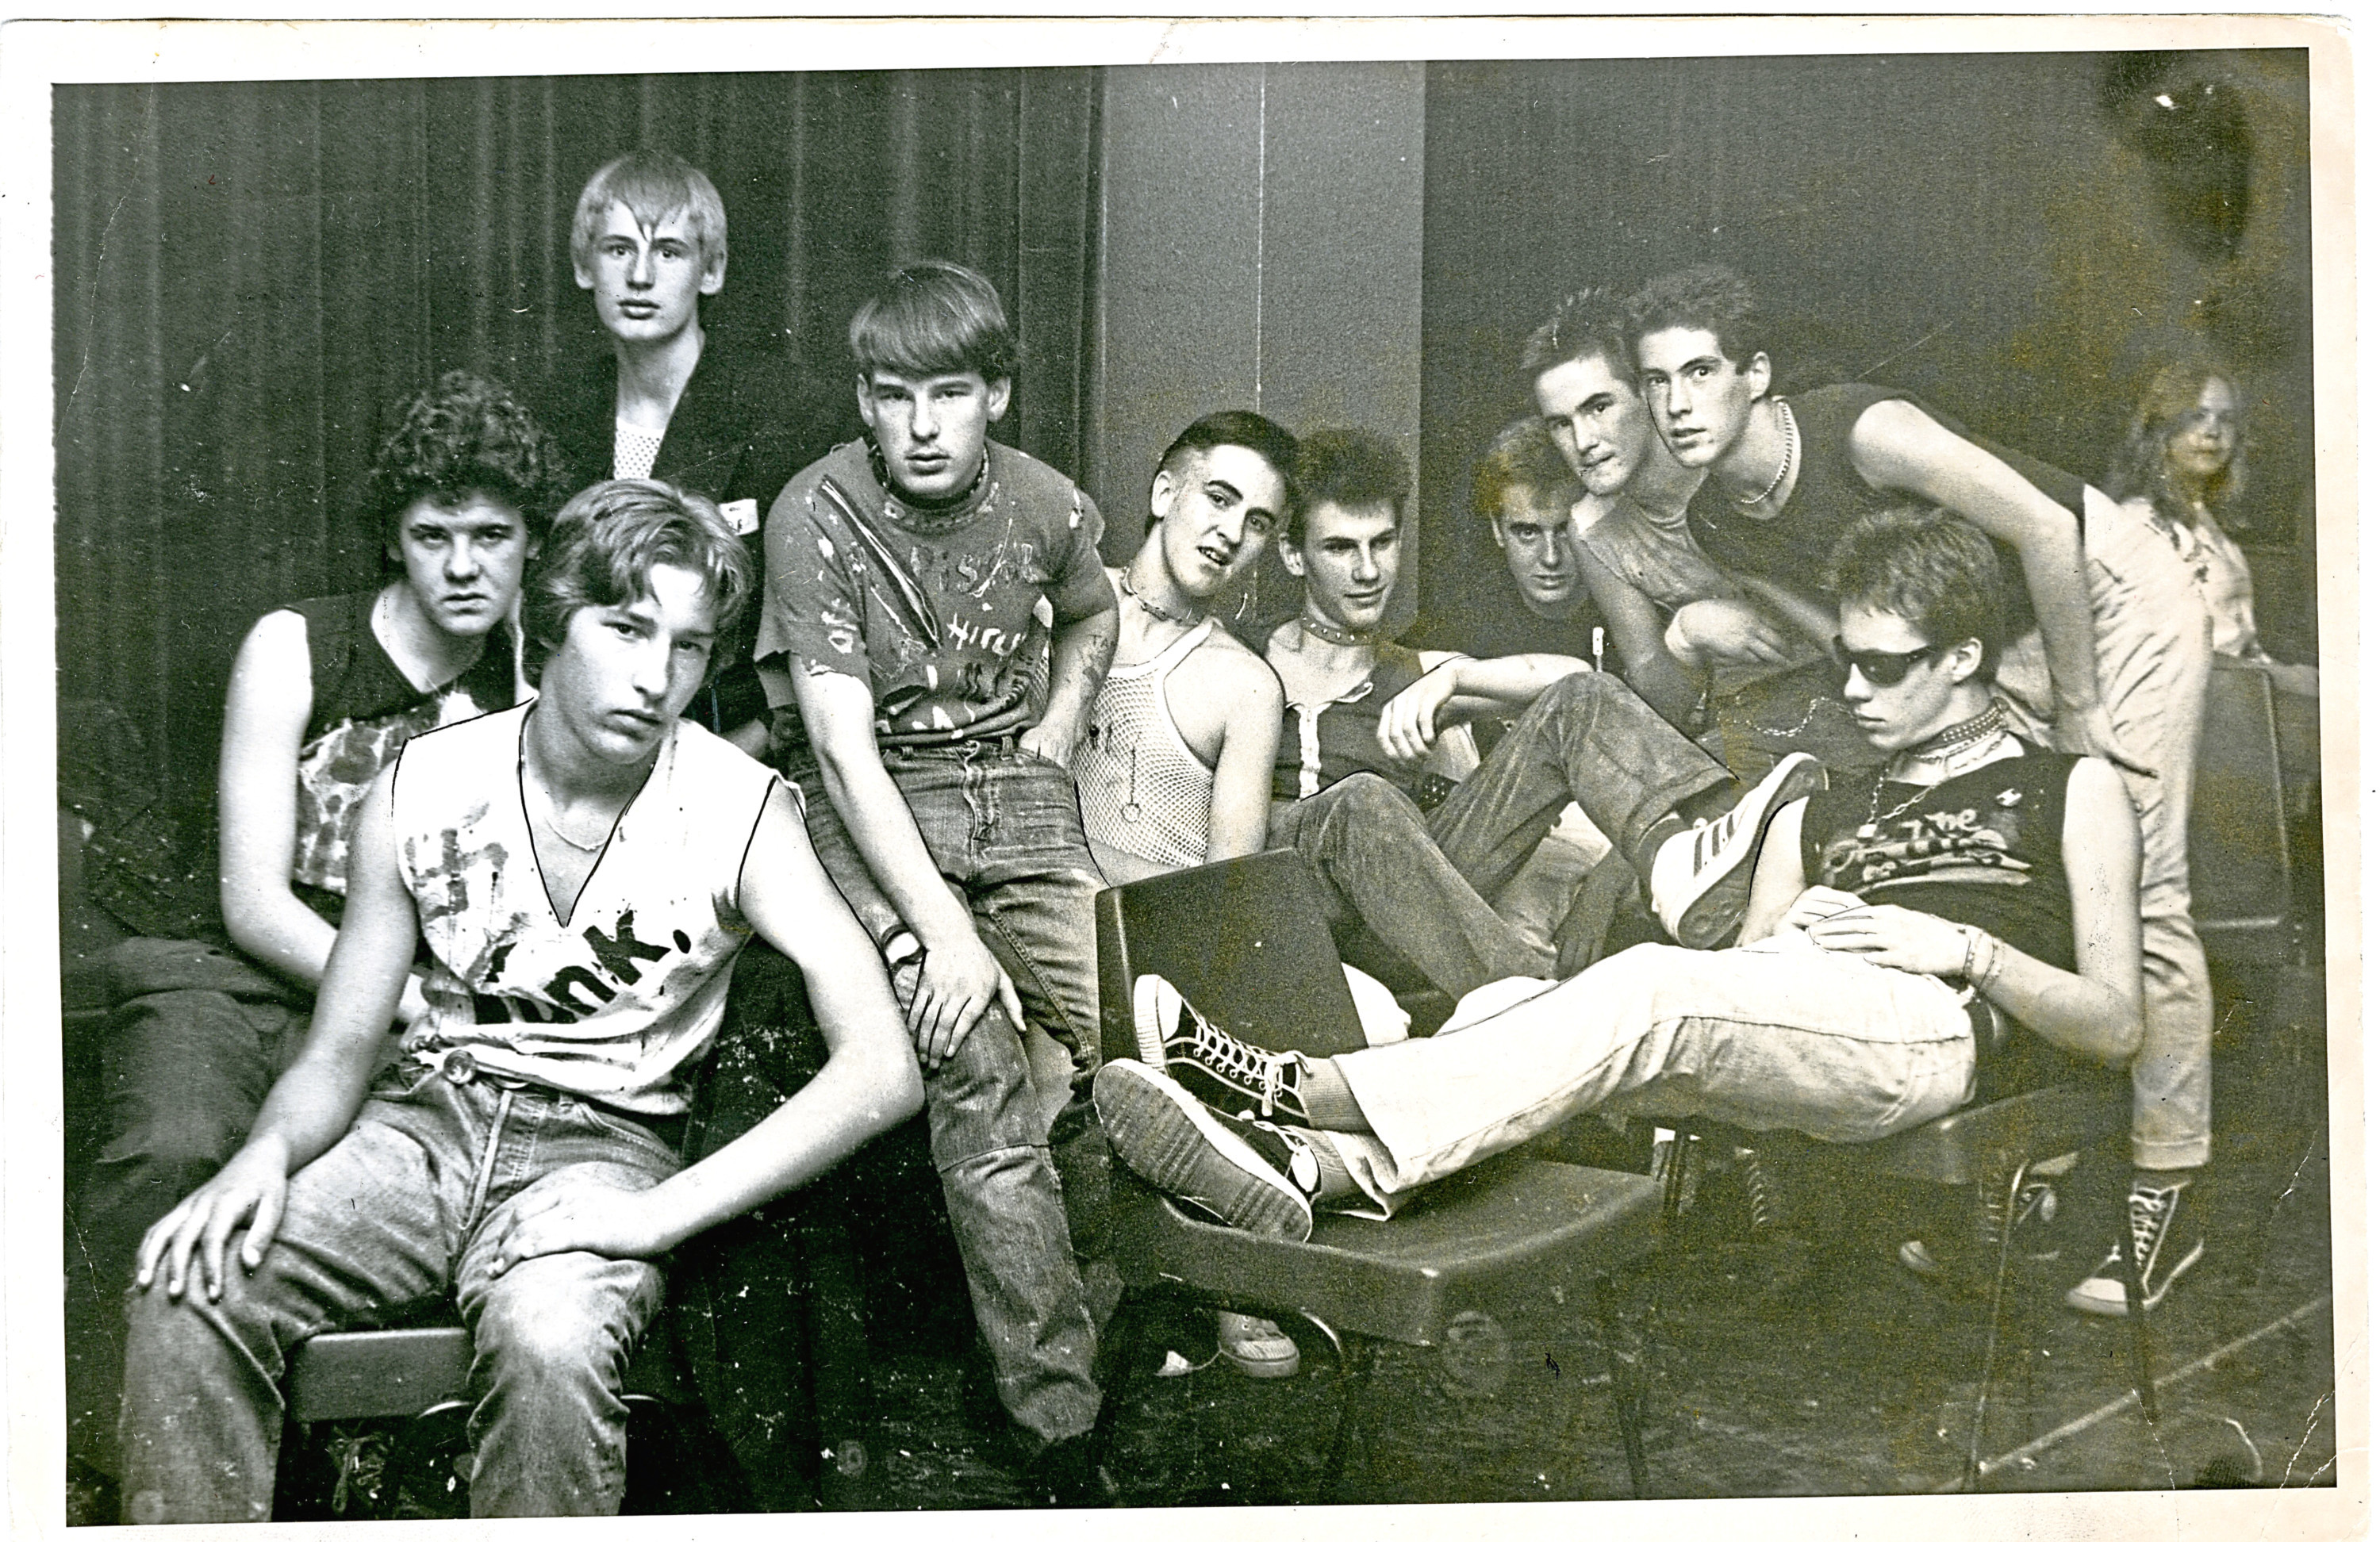 Back in the Day - Monday 28 2018 Punk Rockers pose for a picture in 1977 - no detail given for this picture. B98 1997-09-00 Punk Rockers in 1977 (C)DCT